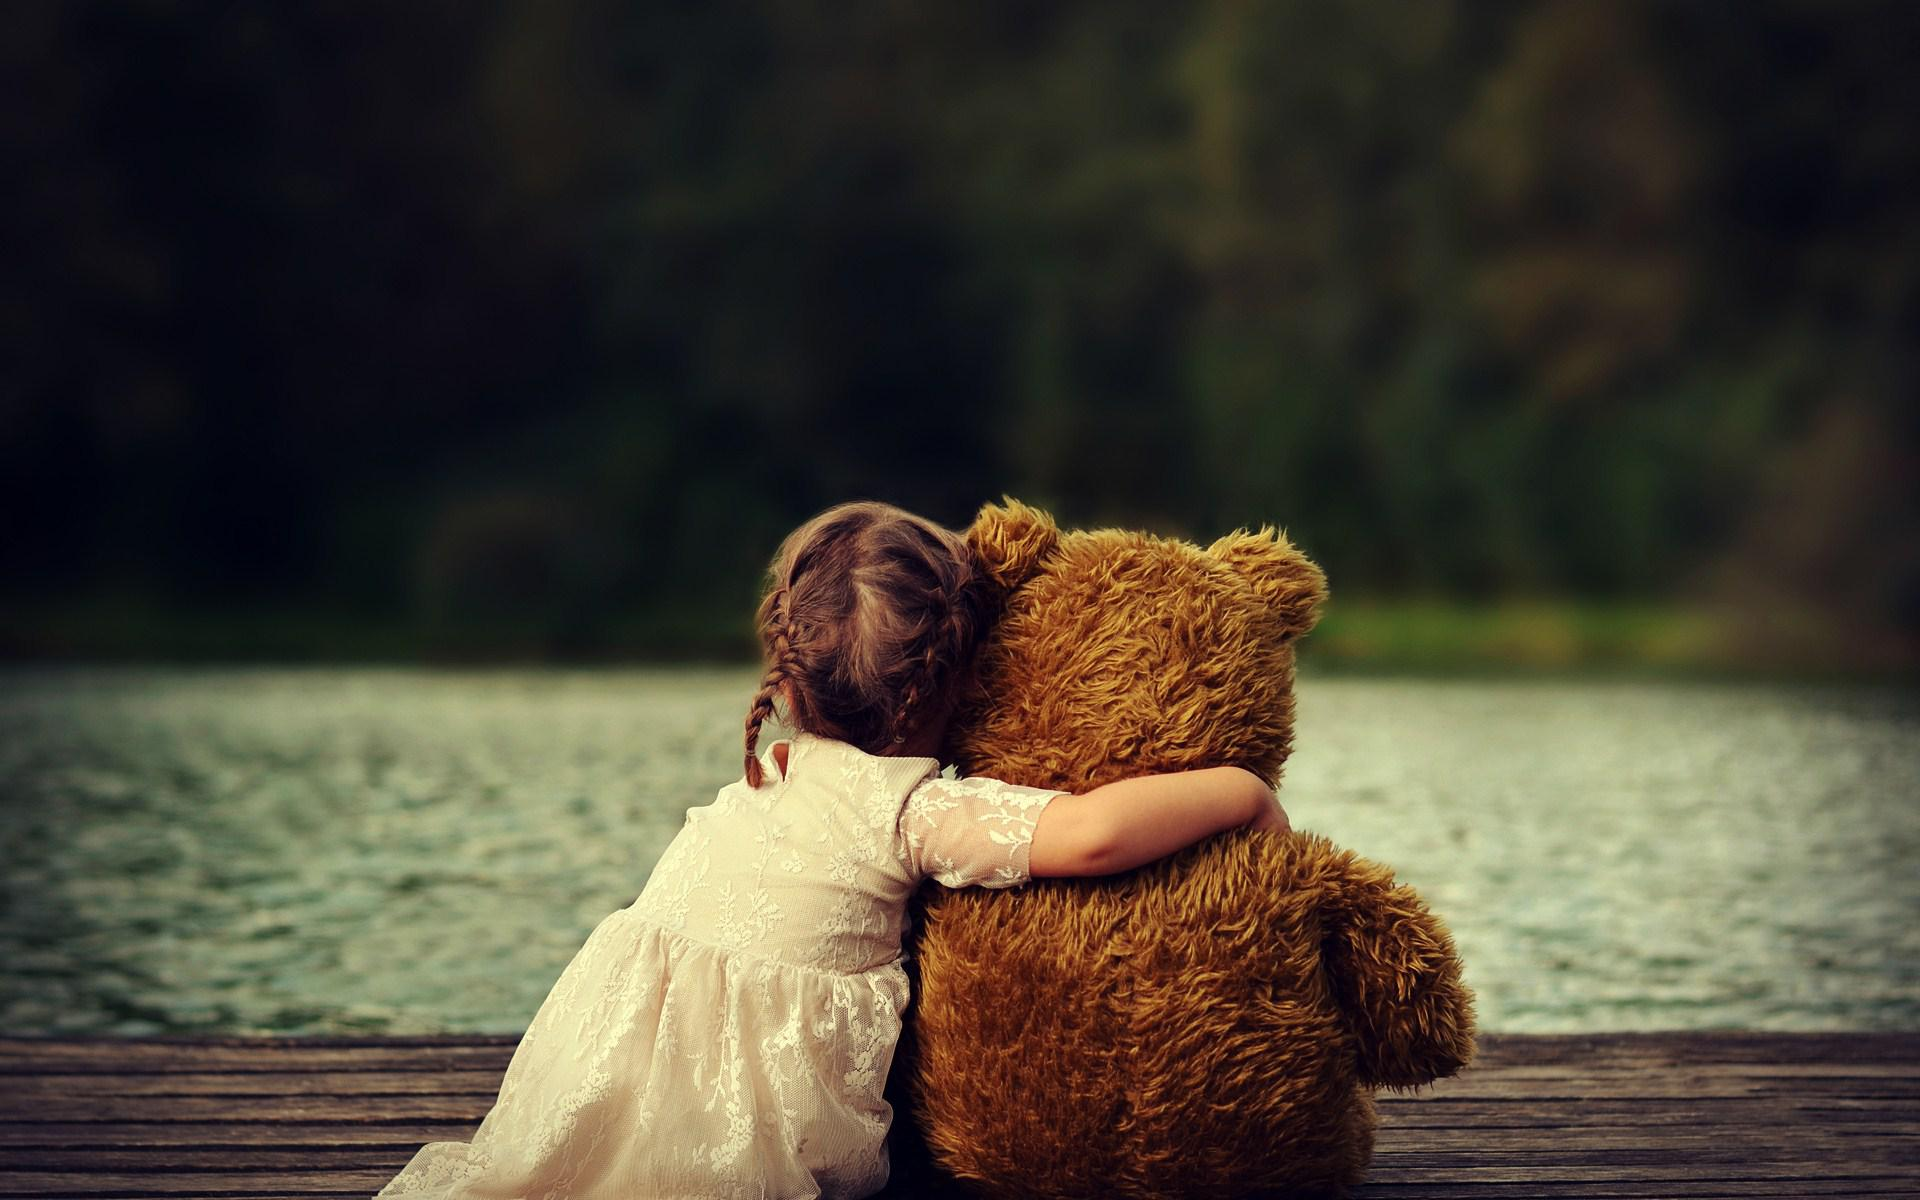 Teddy Bear Hd Wallpapers And Images Free Download 1920x1200